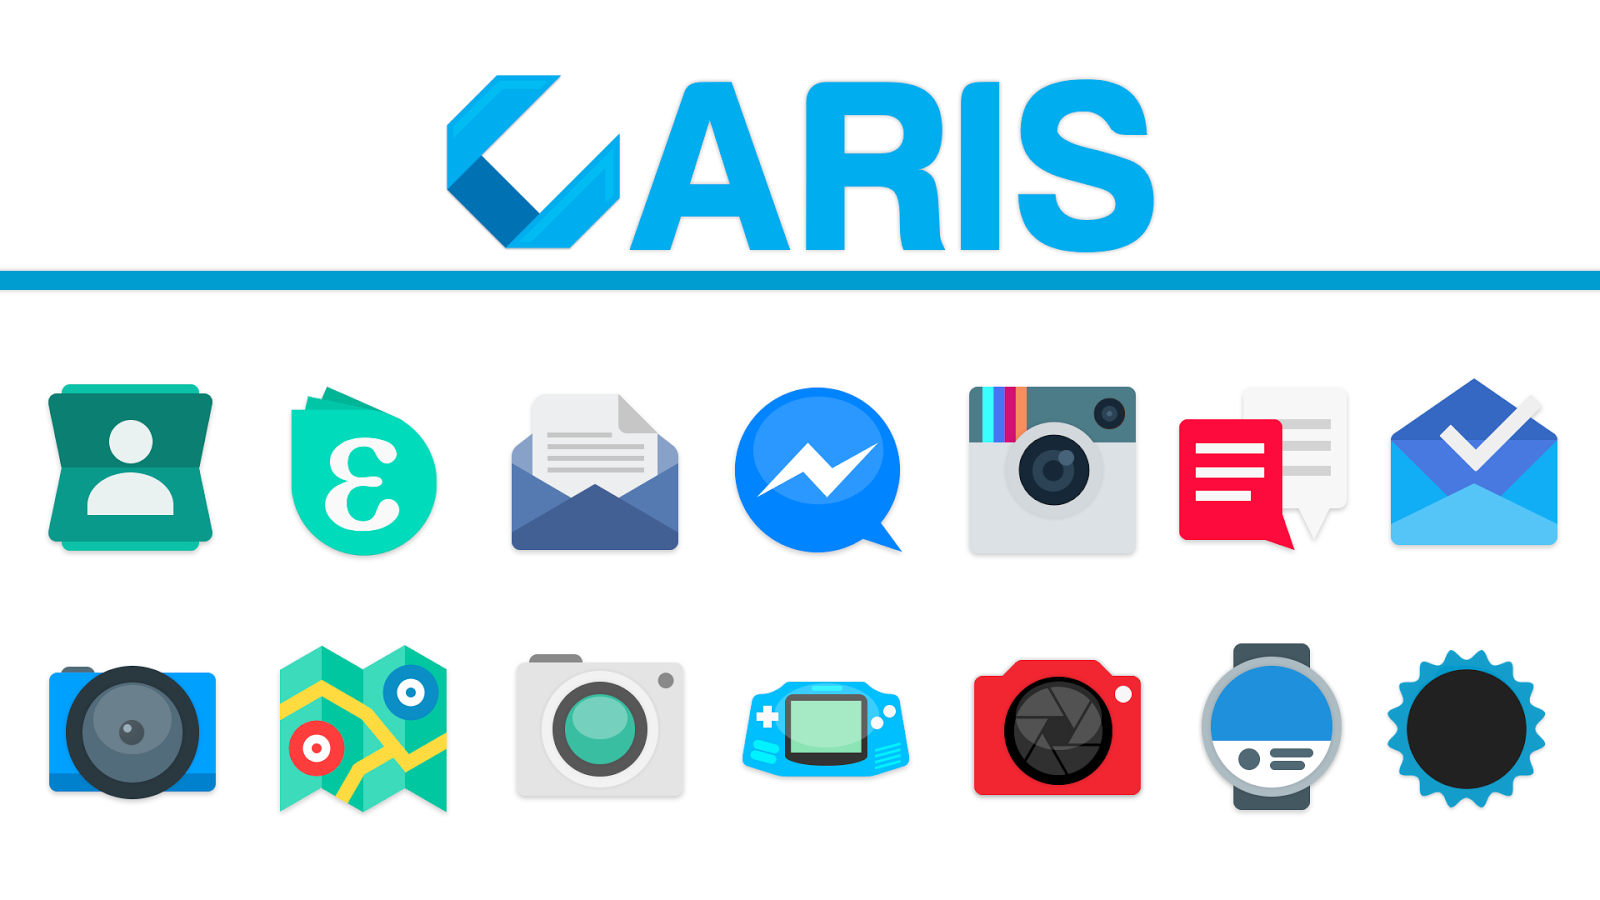 icon pack android oreo 8.0 apk 1.3.5